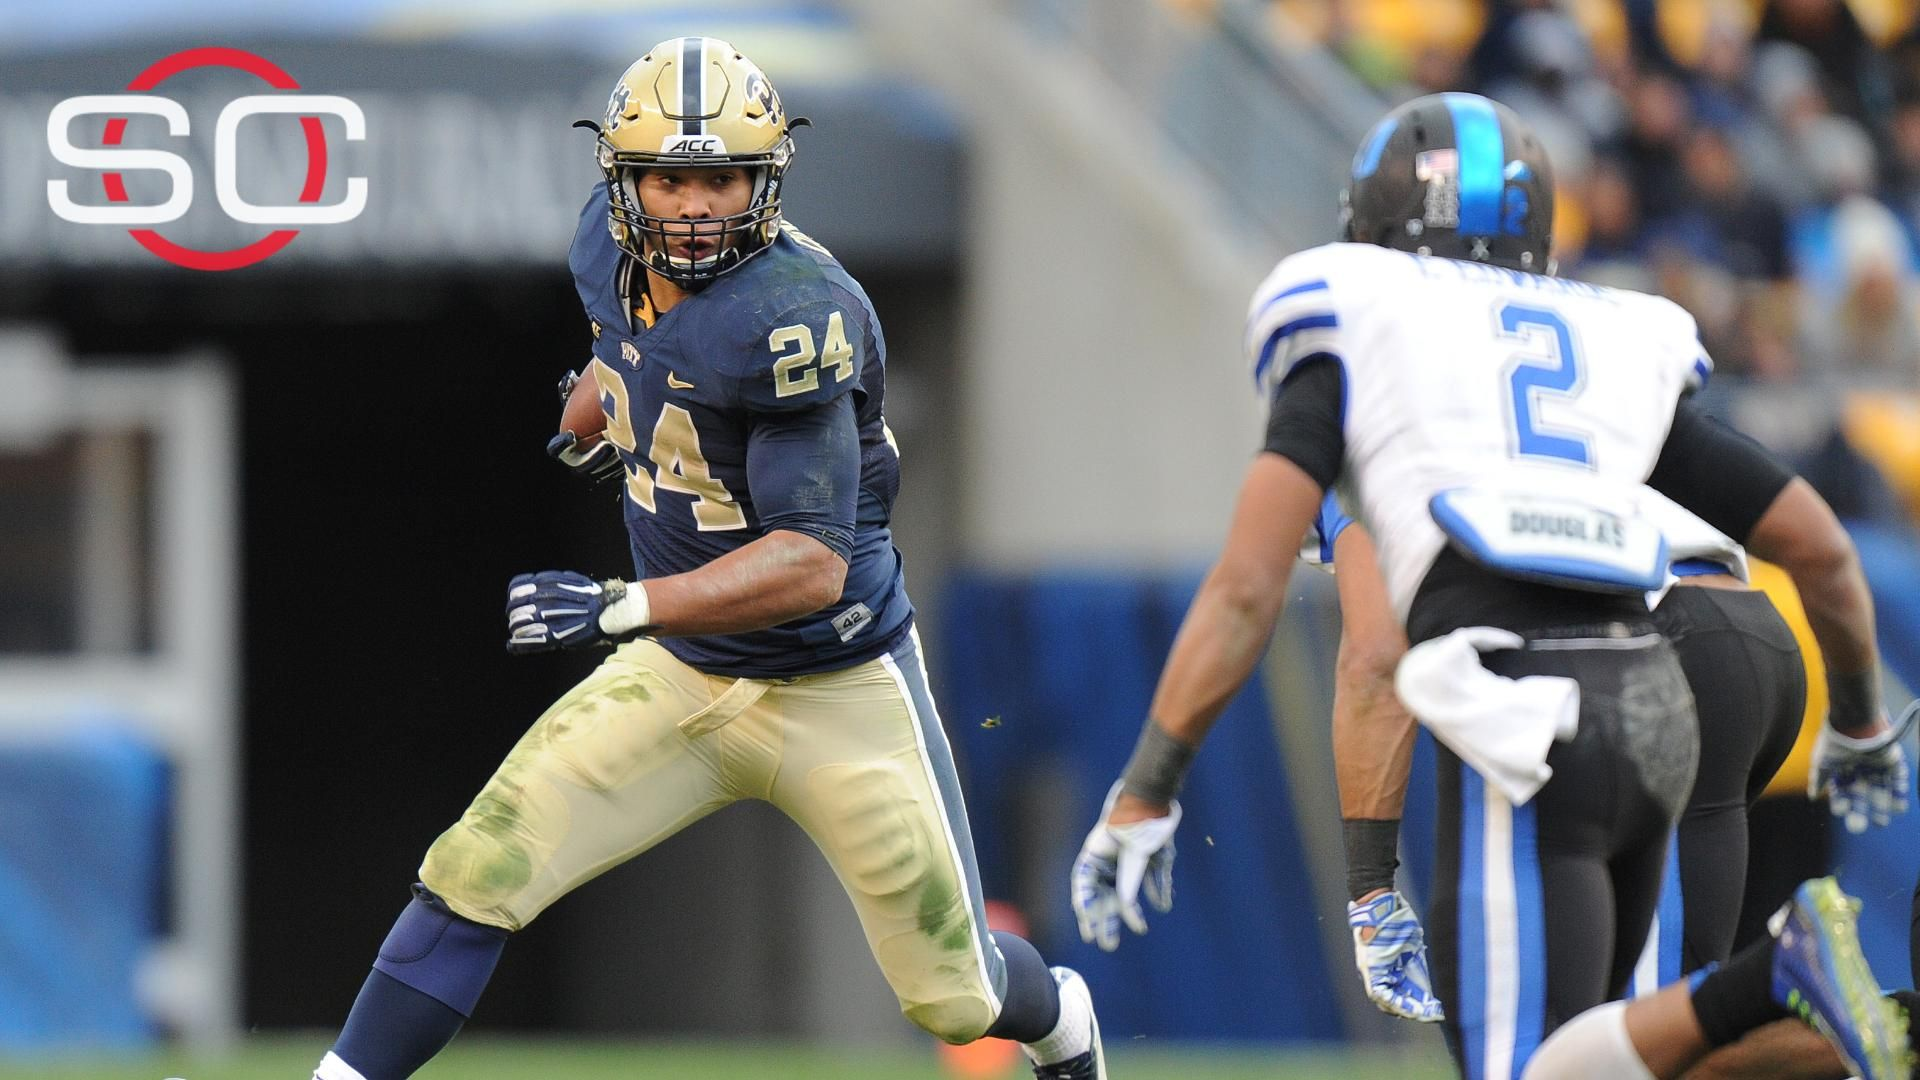 Pitt RB Conner announces cancer diagnosis